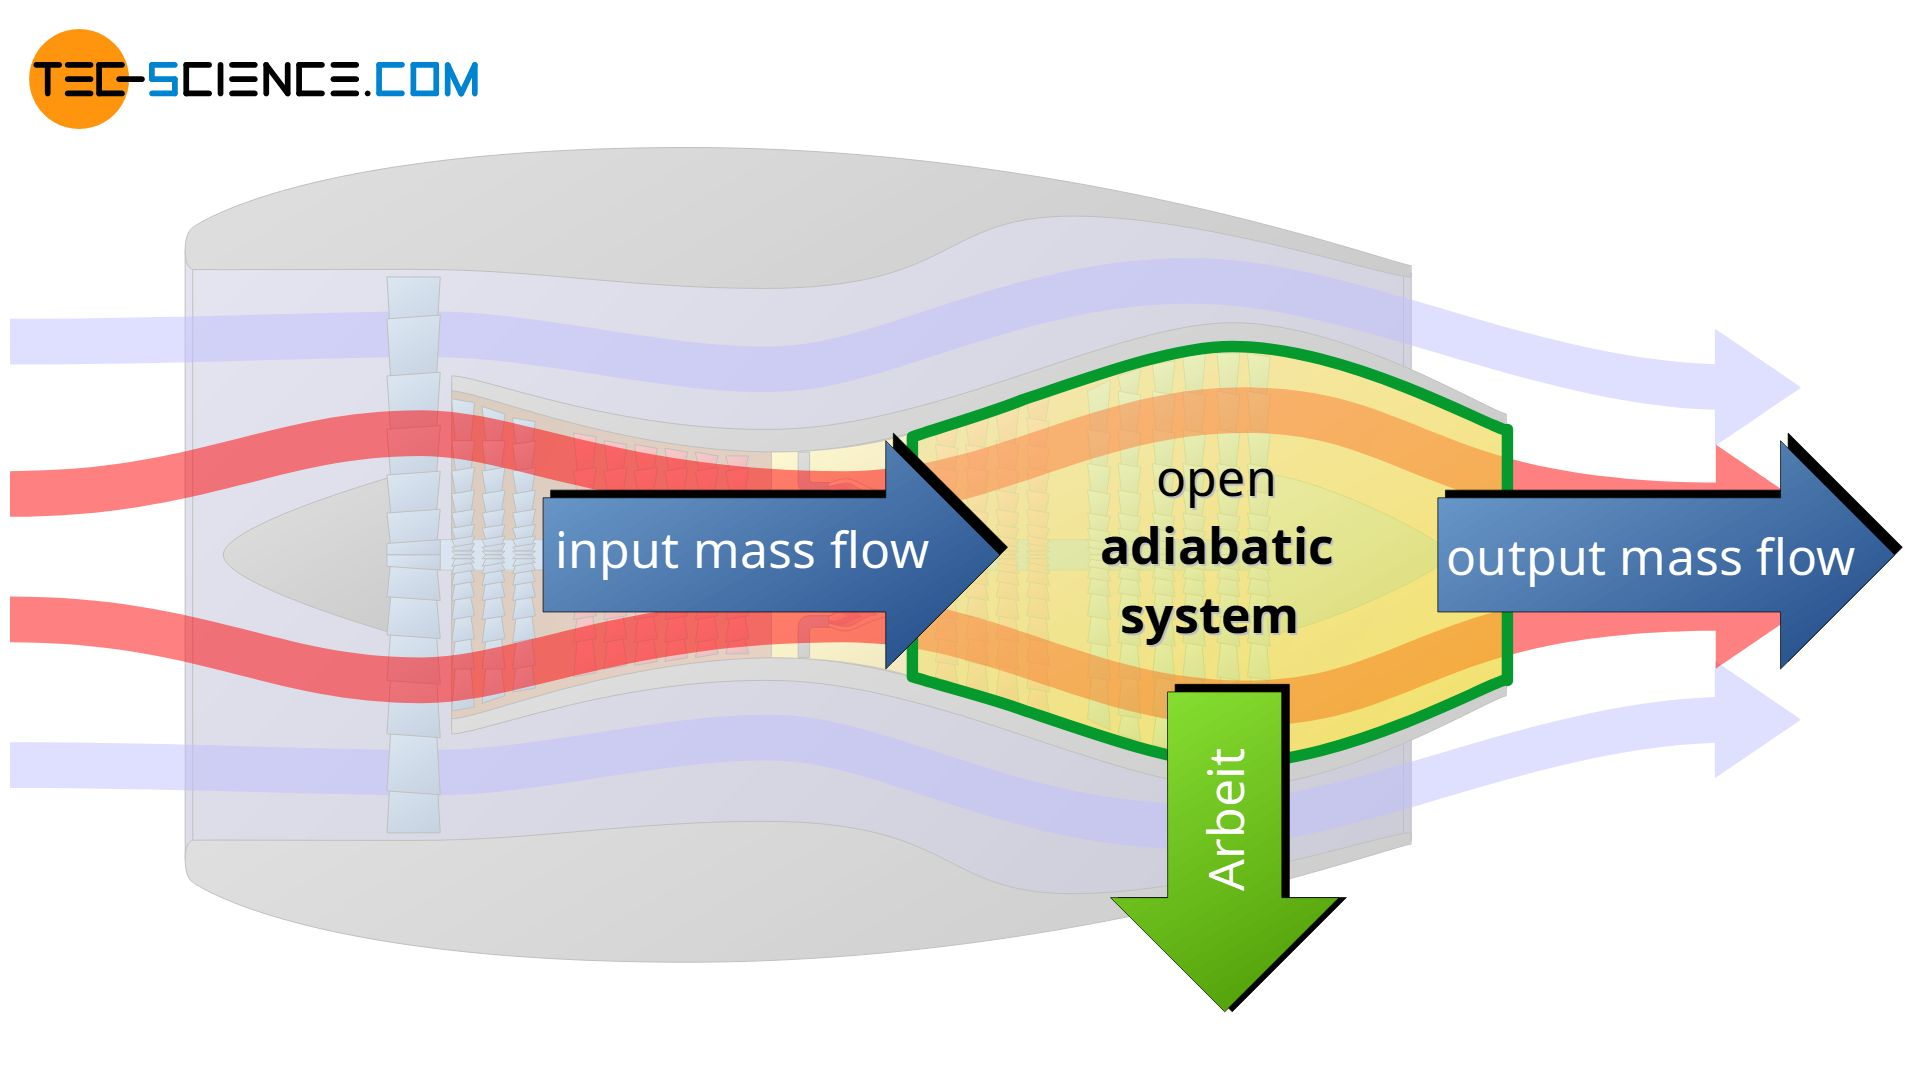 Expansion of hot gases in a jet engine as an example for an open adiabatic system